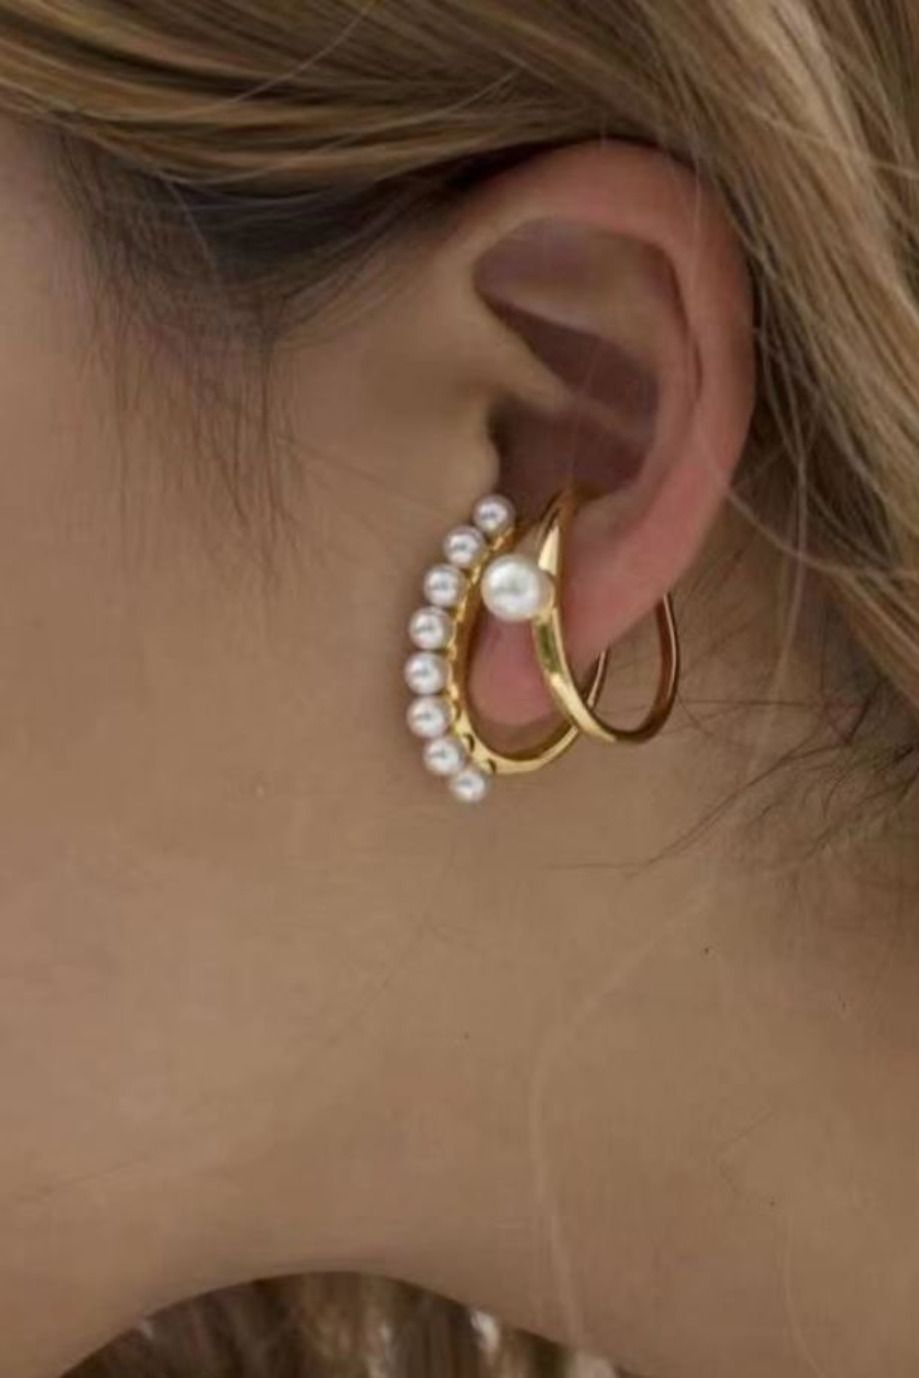 Women Chic Pearl Ear Cuff Beads Stud Earrings Gold Plated Drop Earings